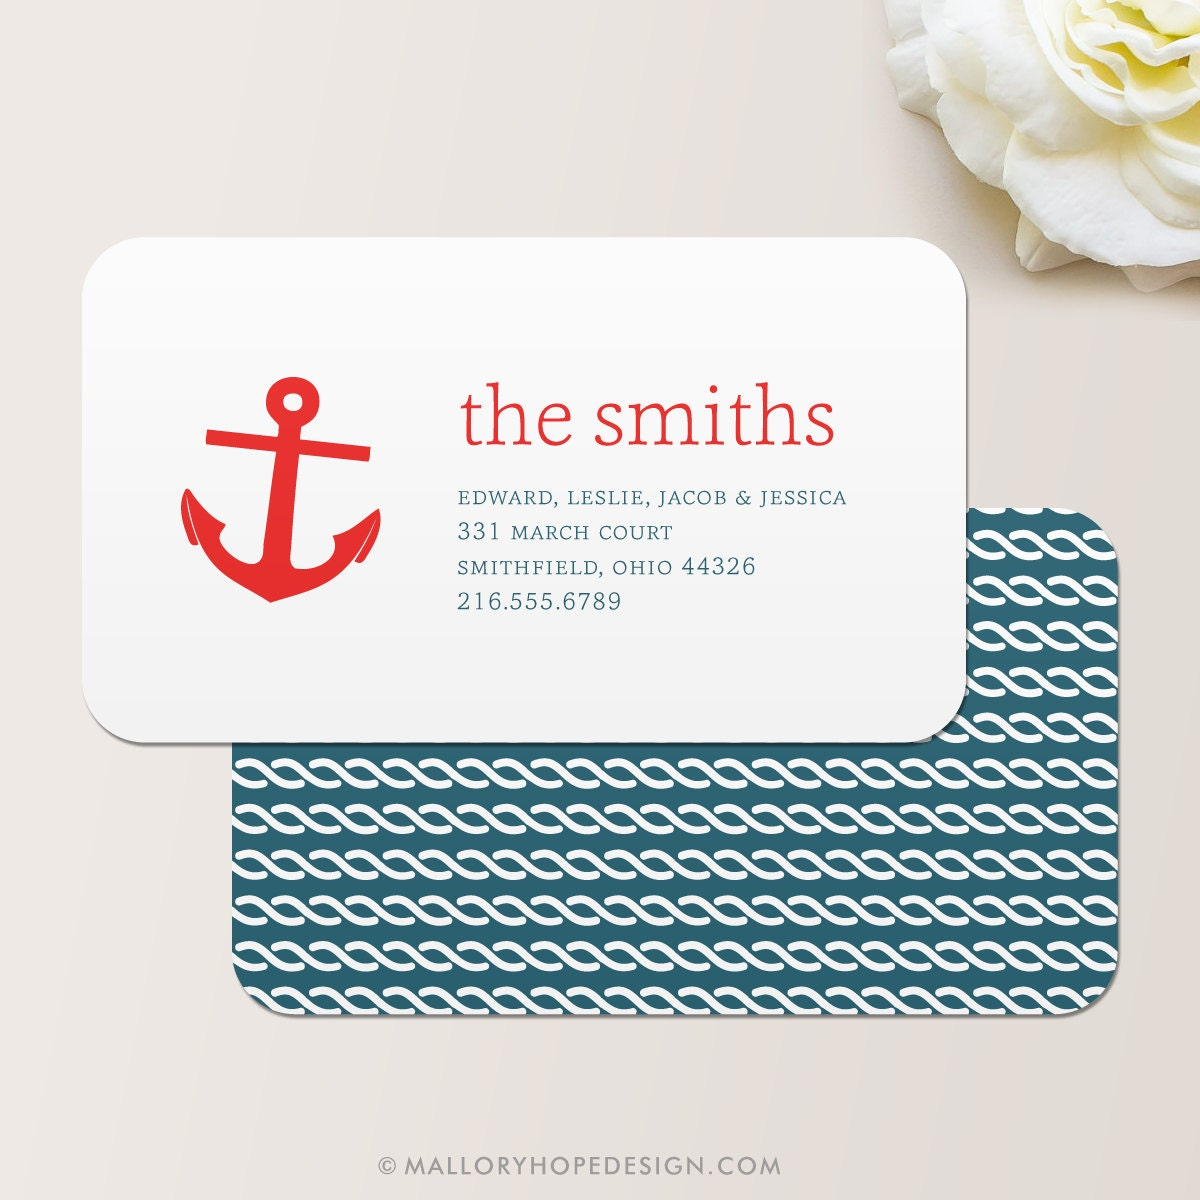 Magnificent Mom Business Cards Contemporary - Business Card Ideas ...